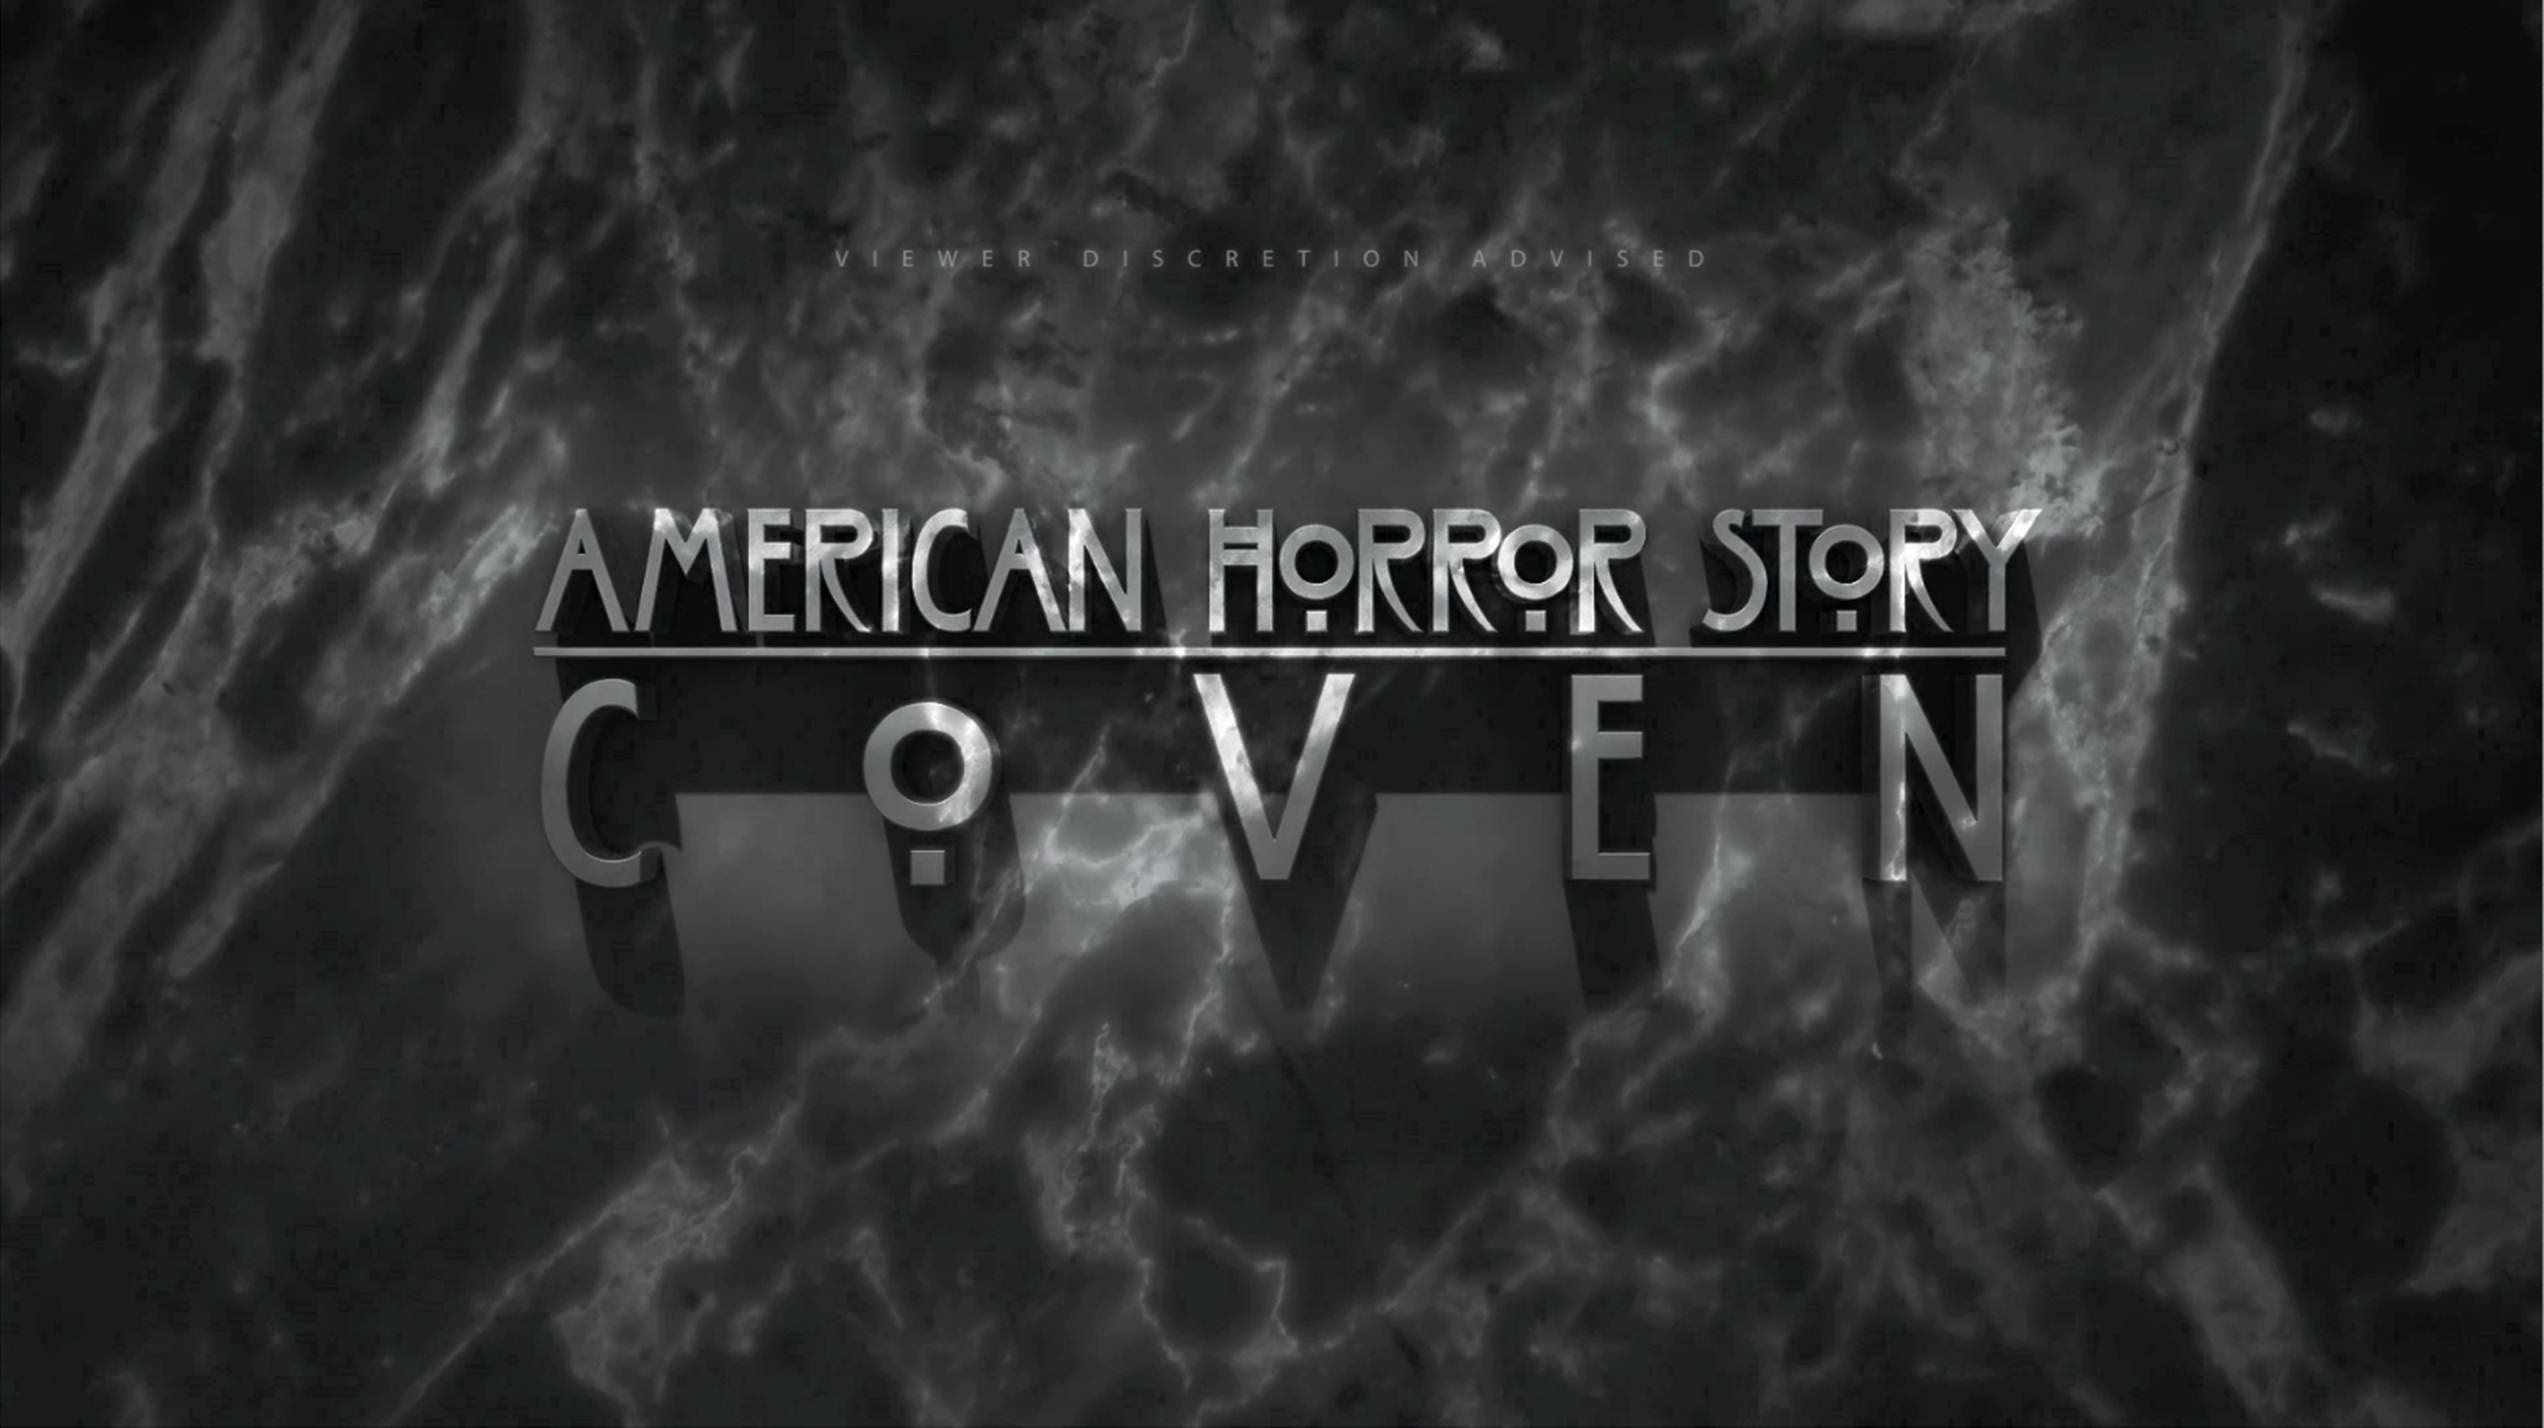 American Horror Story Coven Recap Part 3 Fangirls Are We